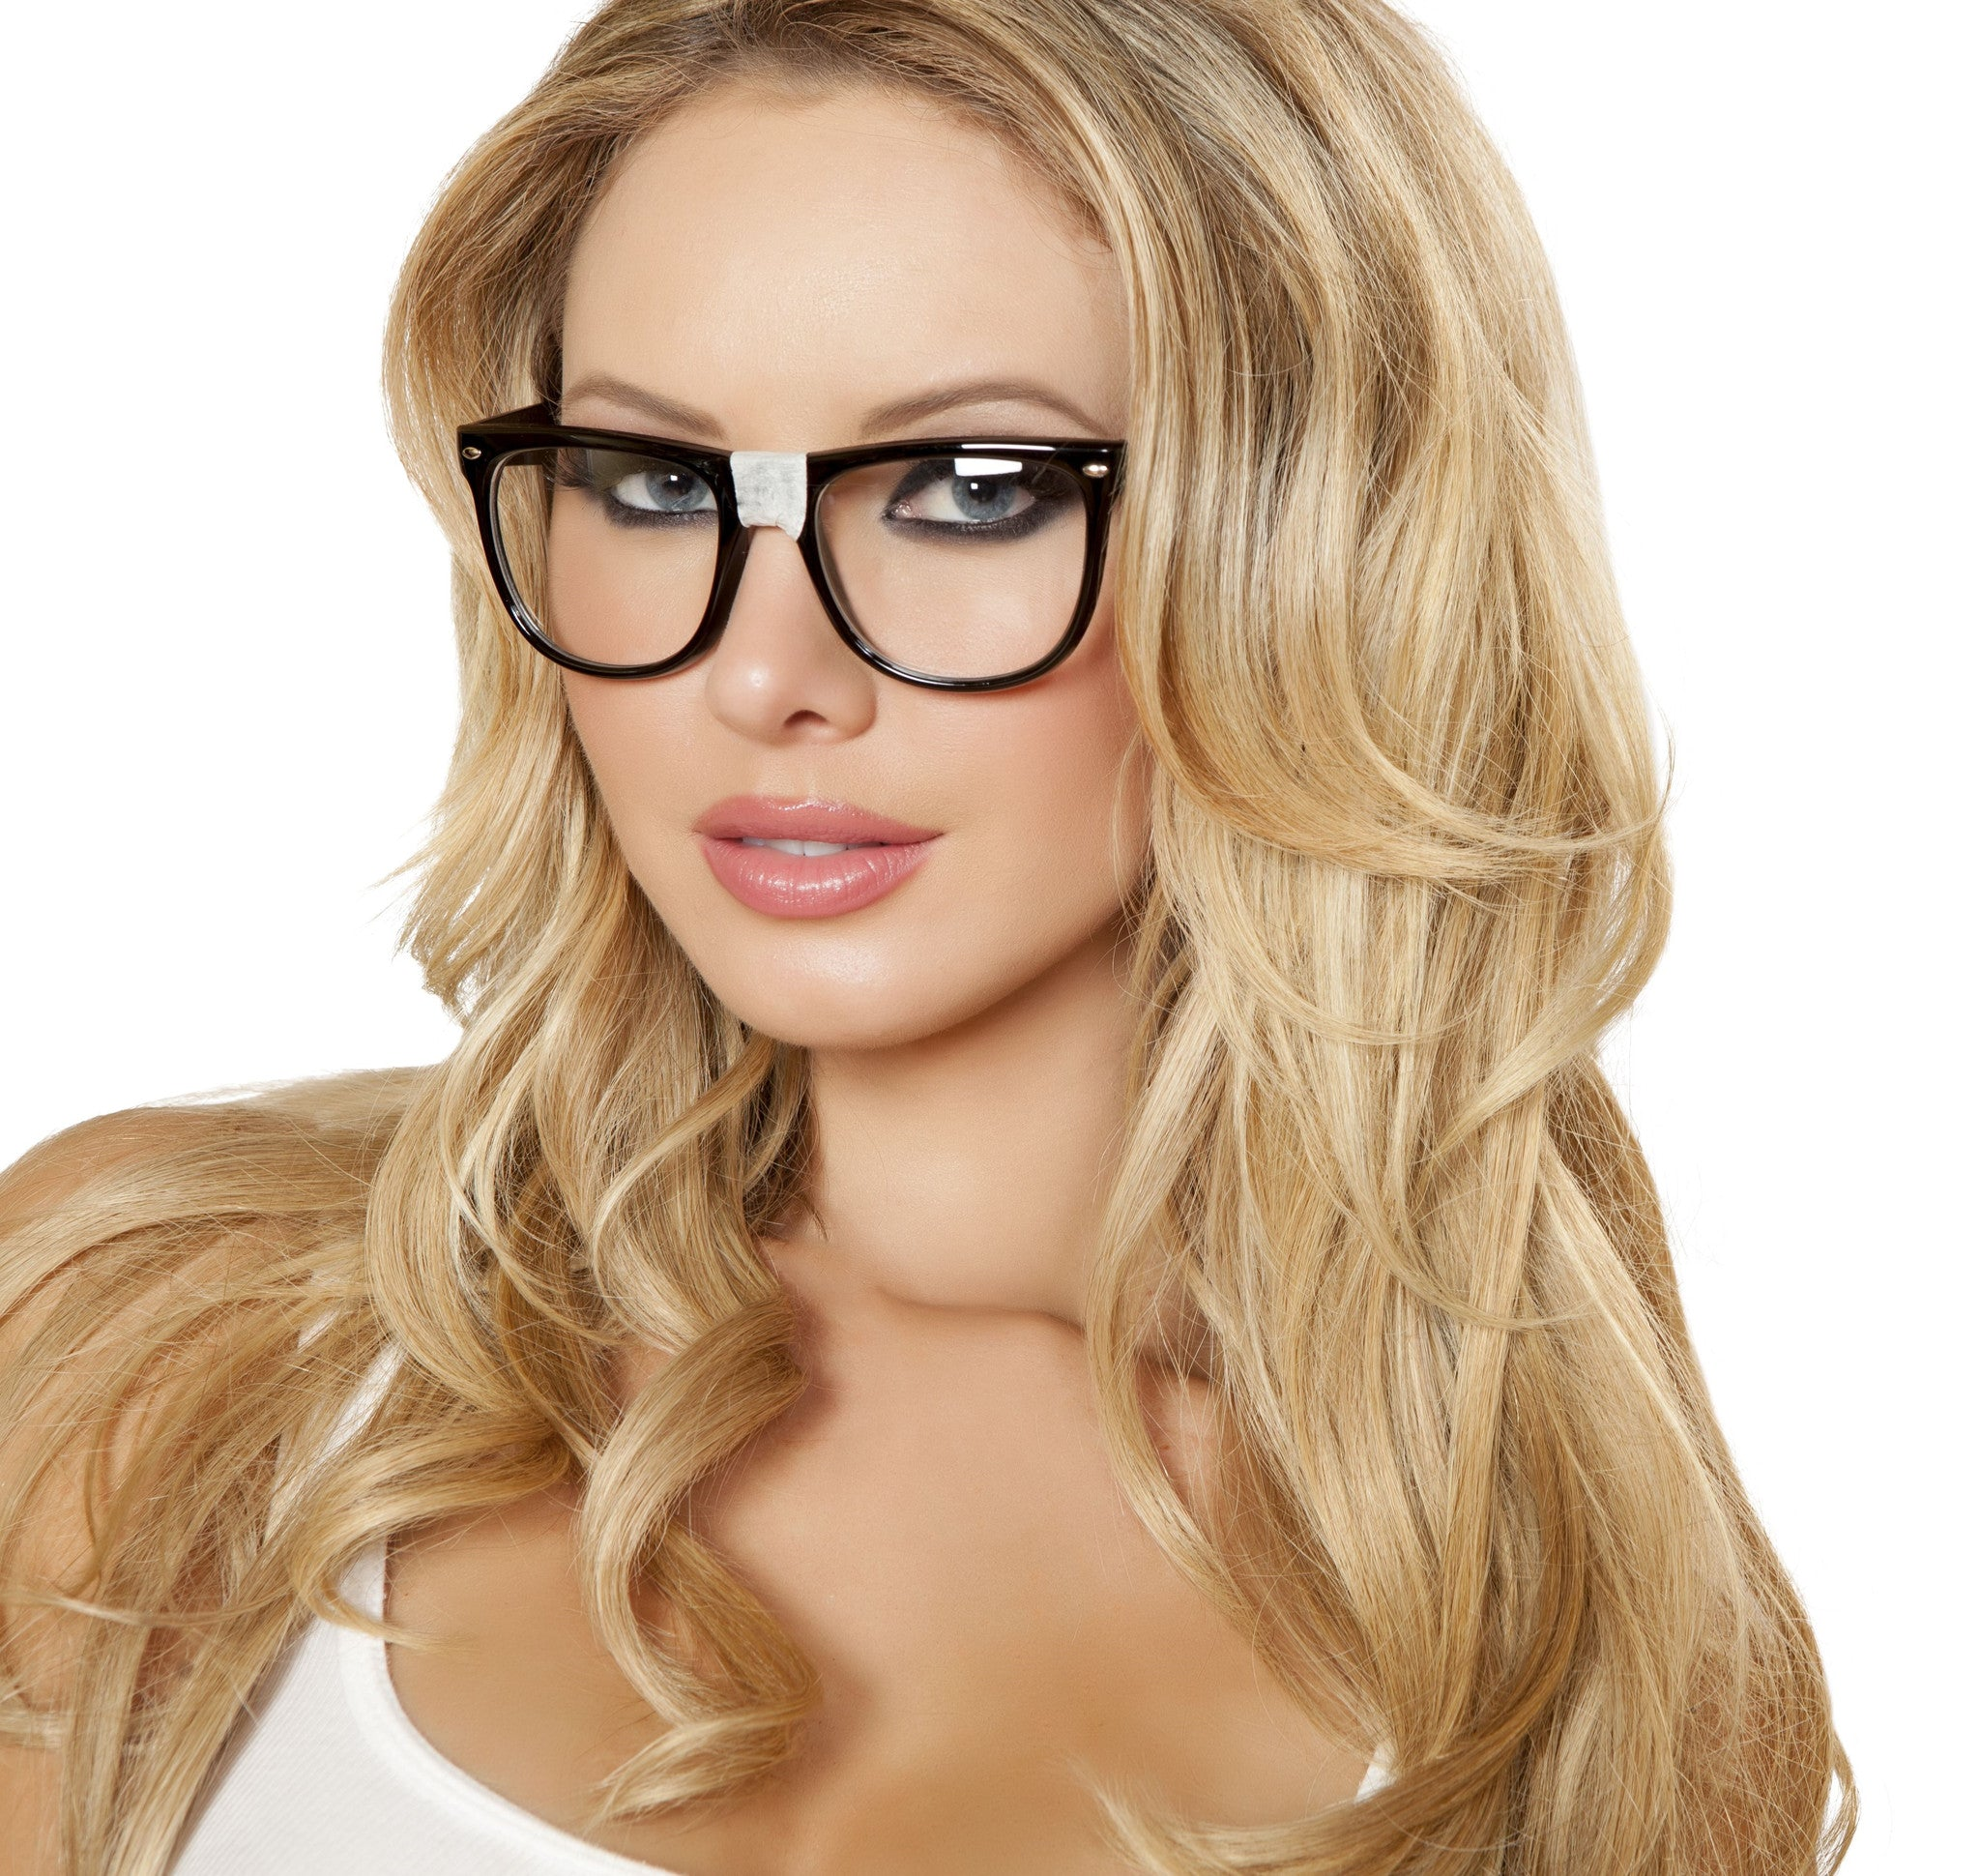 G104 Nerd Glasses ${description} | Roma Costume and Roma Confidential wholesale manufacturer of Women Apparel bulk world wide wholesale and world wide drop ship services for Adult Halloween Costumes, Sexy and Elegant Lingerie, Rave Clothing, Club wear, and Christmas Costumes. Accessories, Roma Costume, Inc., Roma Costume, Roma Confidential, Wholesale clothing, drop ship, drop ship service, Wholesale Lingerie, Wholesale Adult Halloween Costumes, Rave Clothing, EDM Clothing, Festival Wear, Christmas Costumes, Clubwear, Club wear.